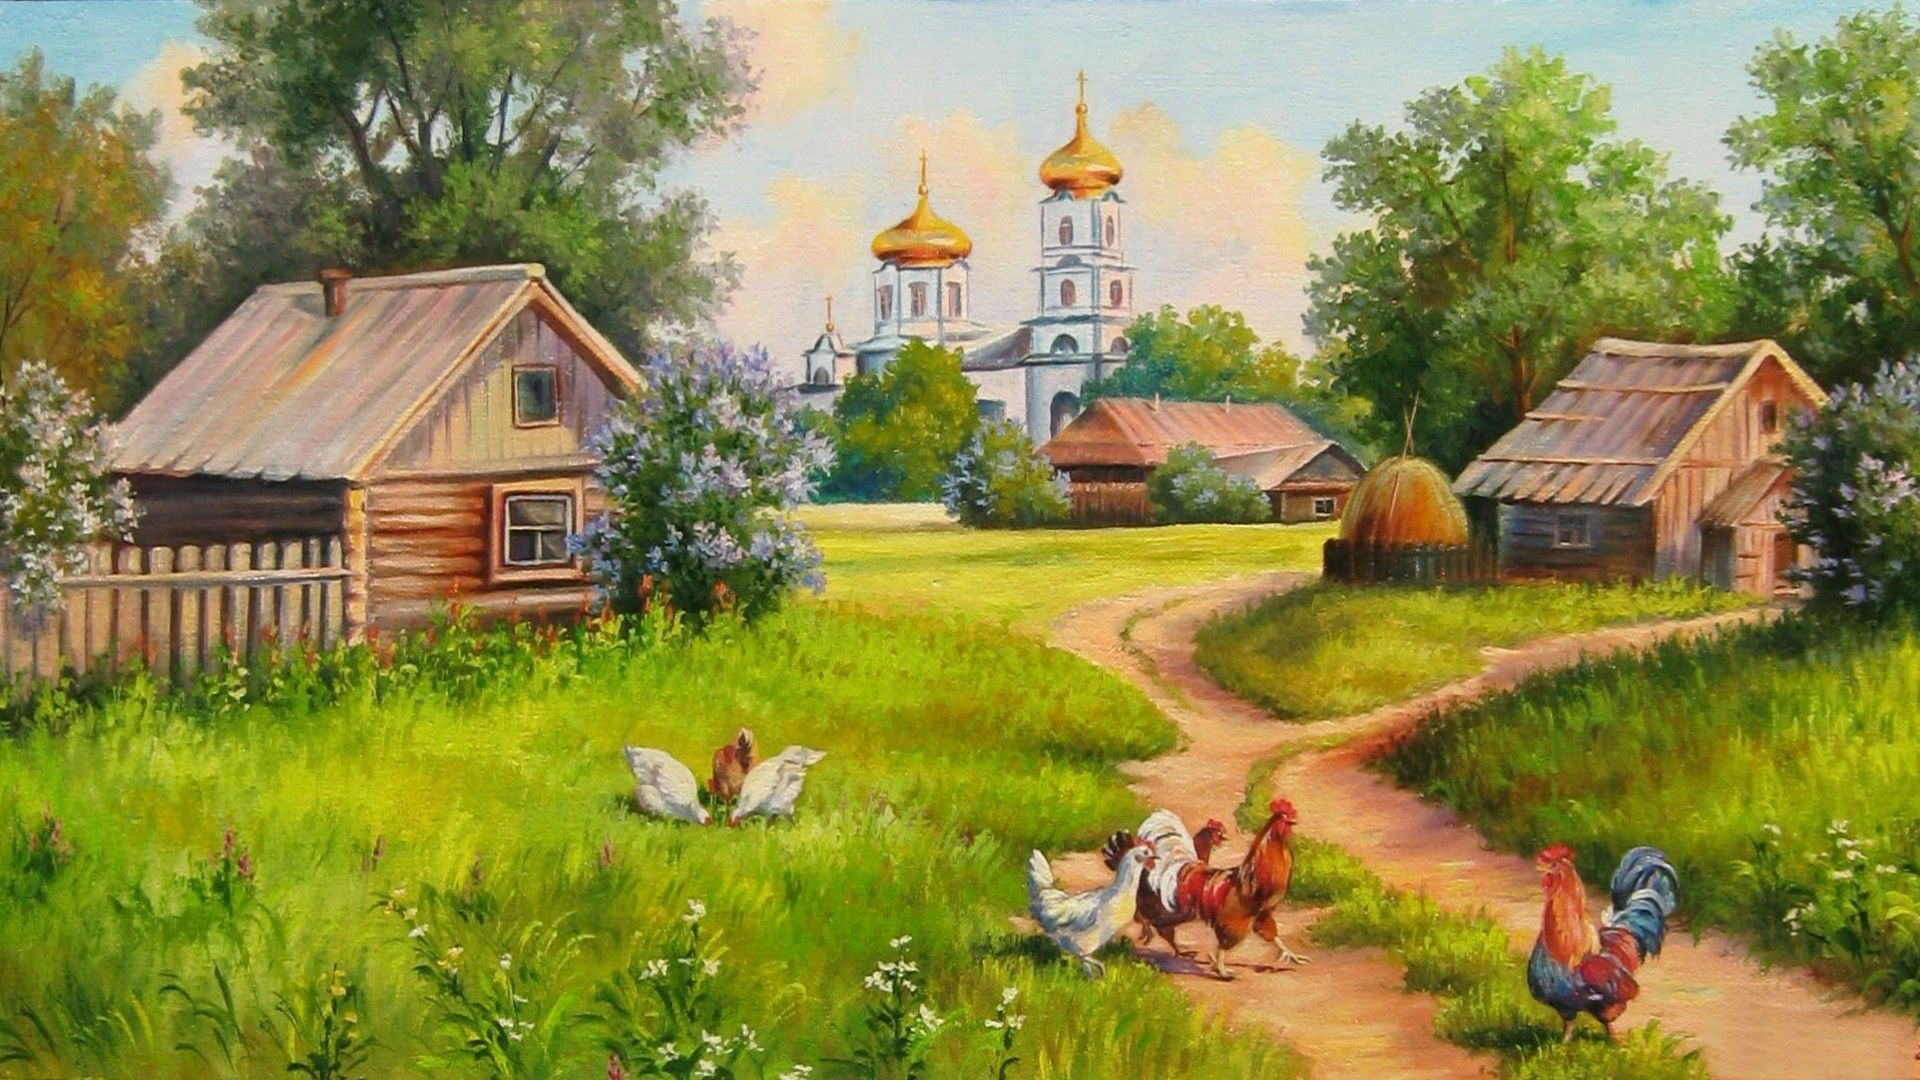 Villages Wallpaper